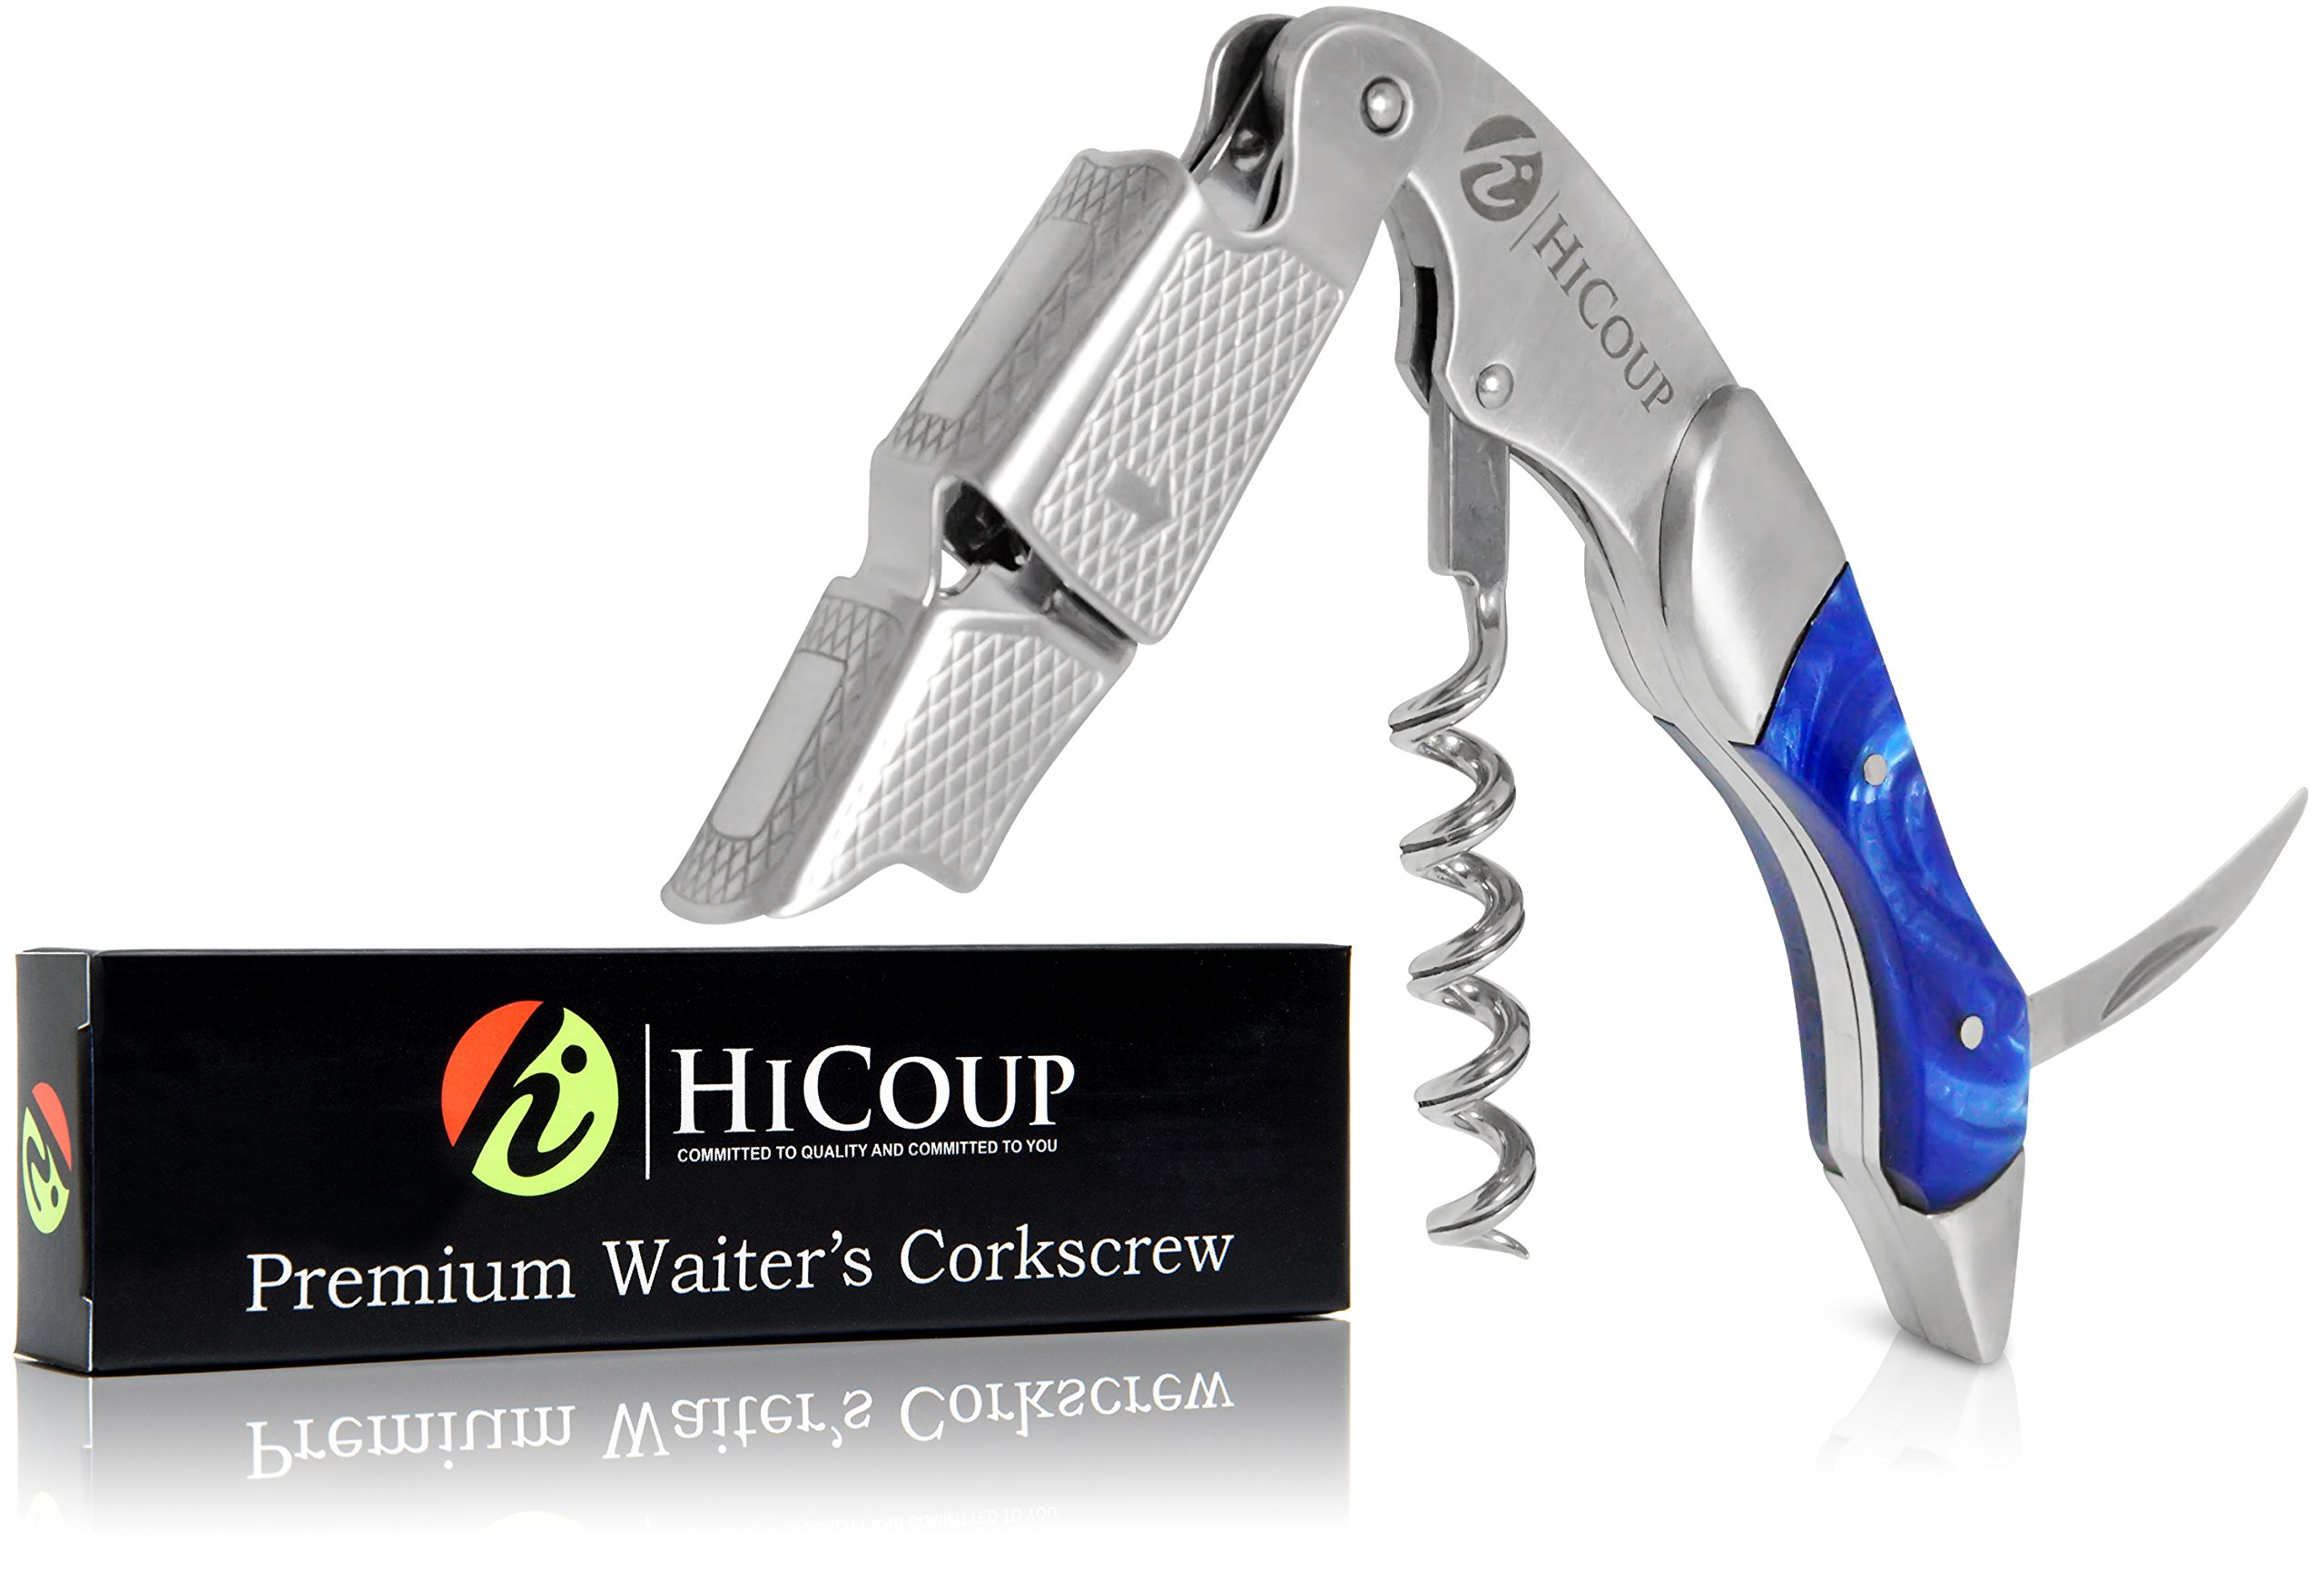 Waiters Corkscrew by HiCoup - Professional Stainless Steel with Sapphire Resin Inlay All-in-one Corkscrew, Bottle Opener and Foil Cutter, the Favoured Wine Opener of Sommeliers, Waiters and Bartenders